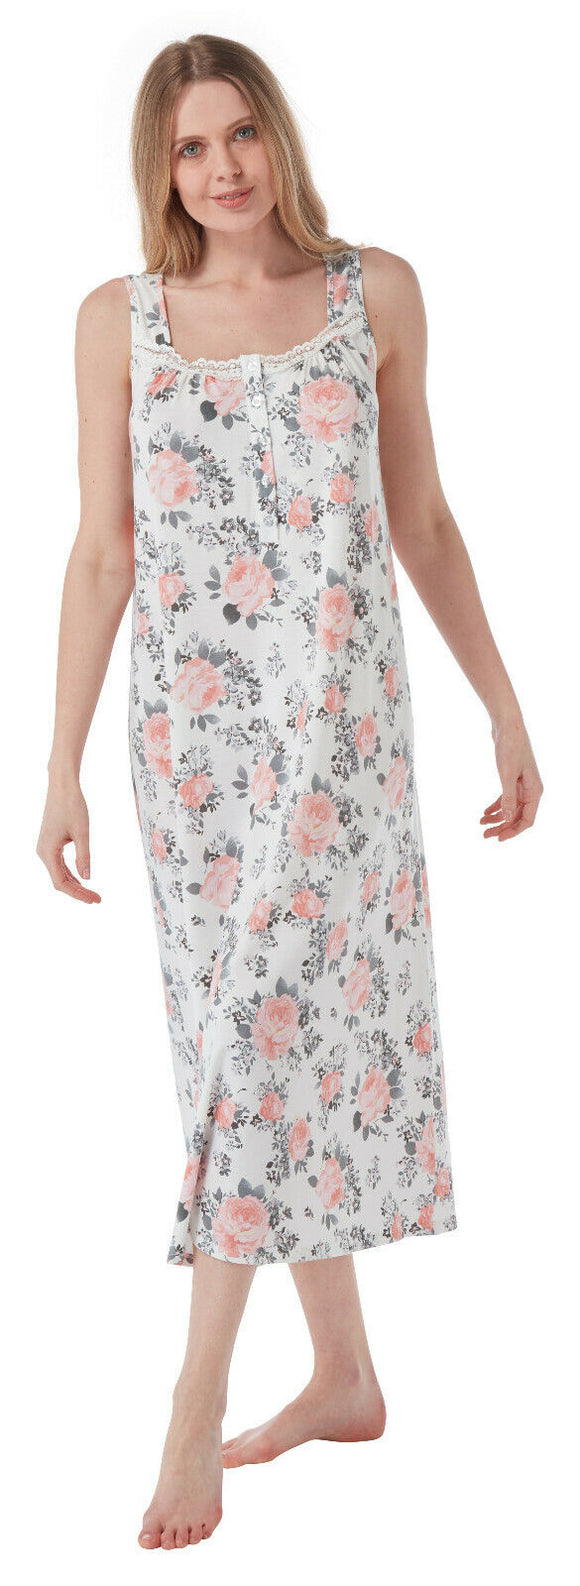 Marlon Soft Stretch Jersey Nightdress sleeveless